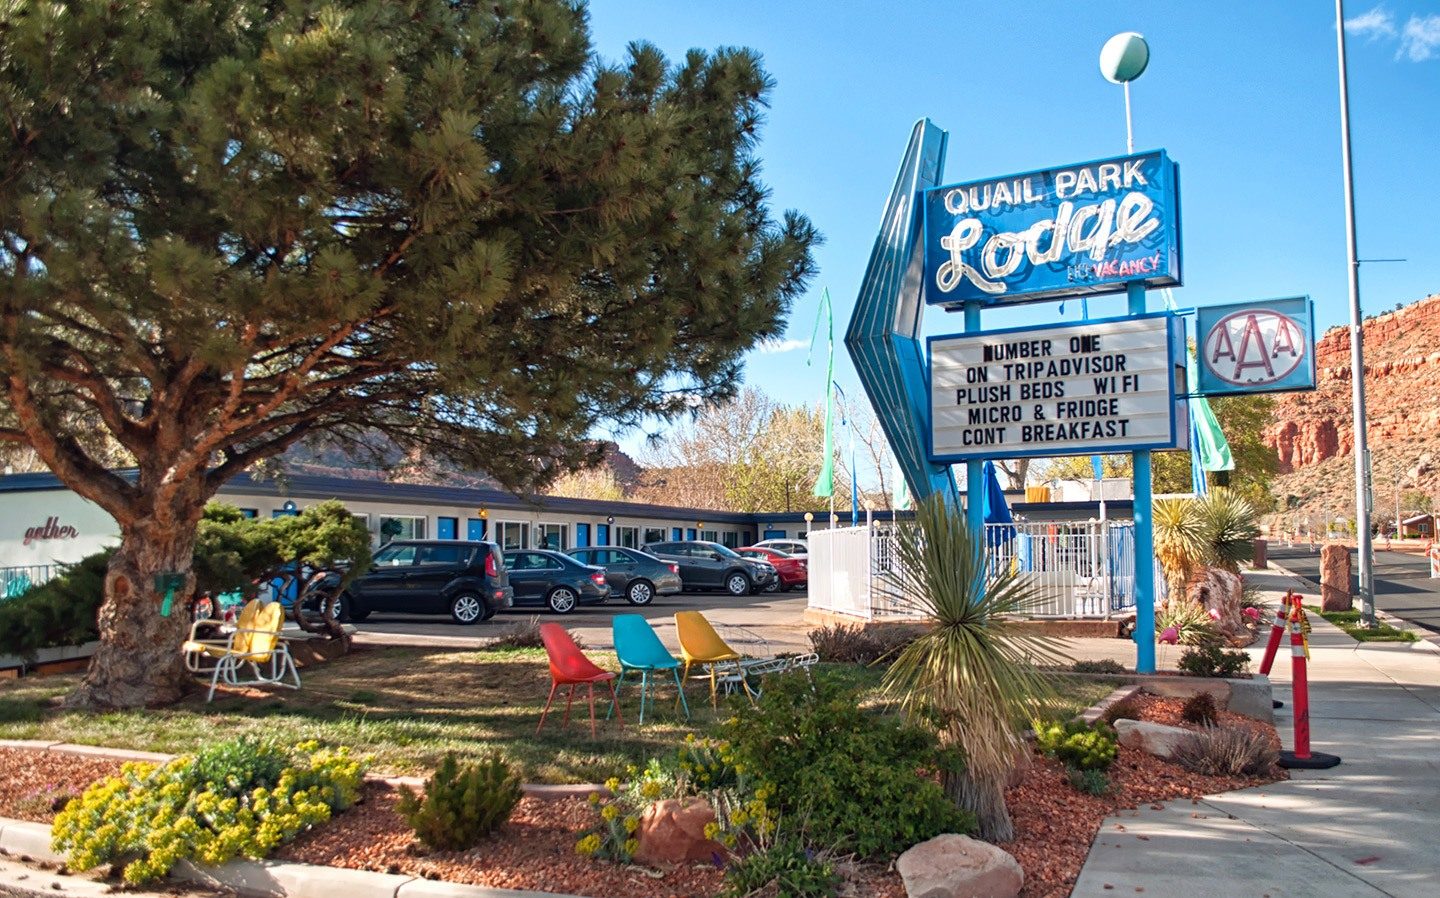 The vintage style Quail Park Lodge motel in Kanab, Utah